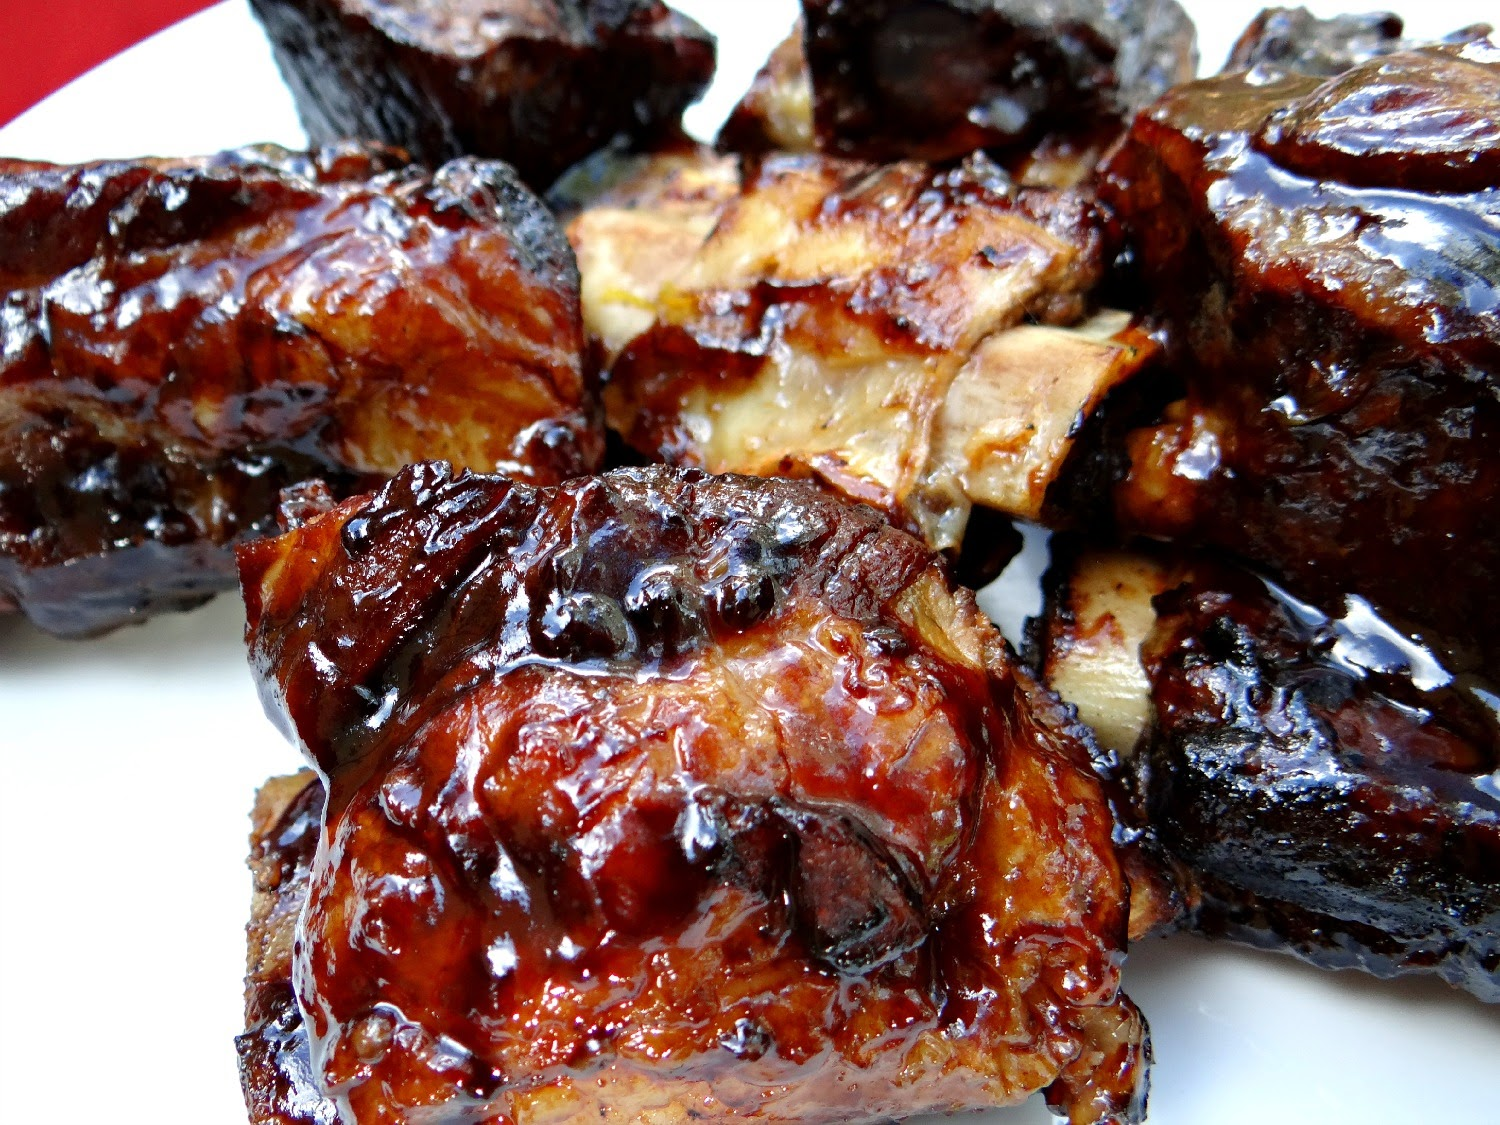 Braised and Grilled Beef Short Ribs with Sticky, Spicy